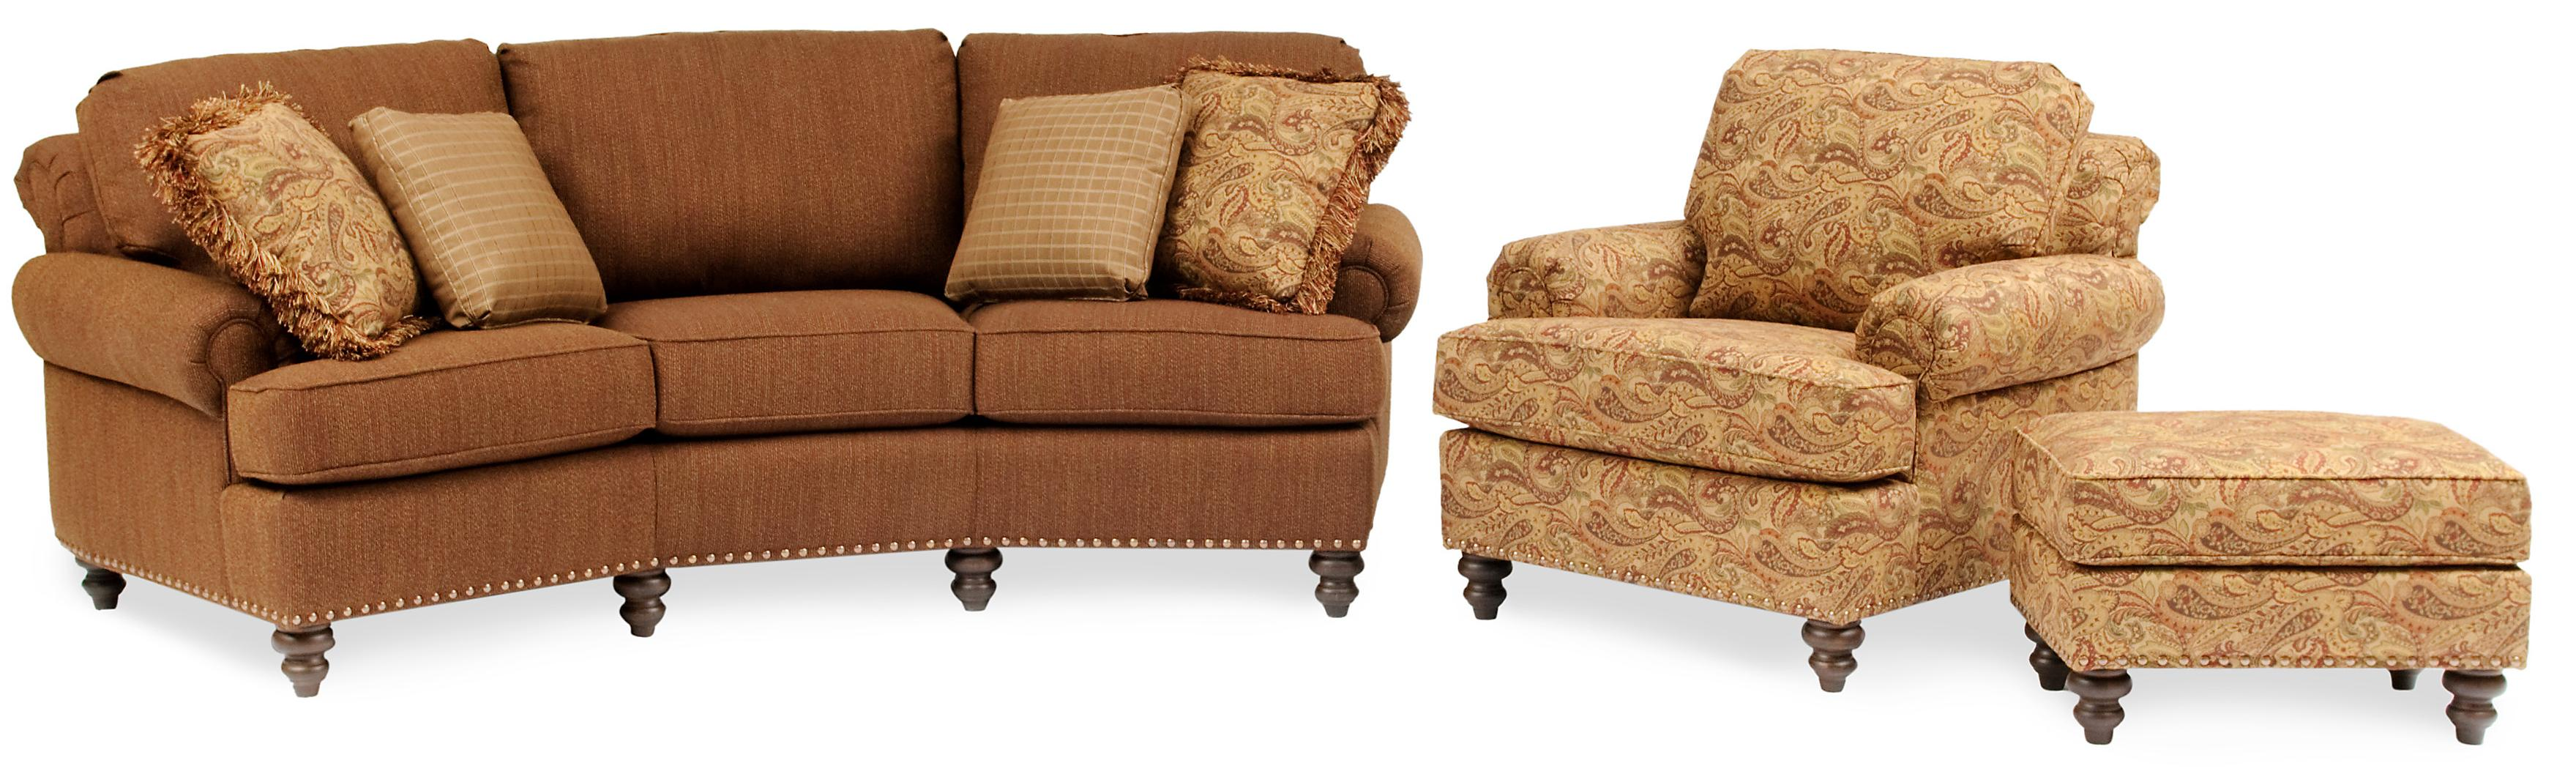 Smith Brothers 324 Curved Conversational Sofa With